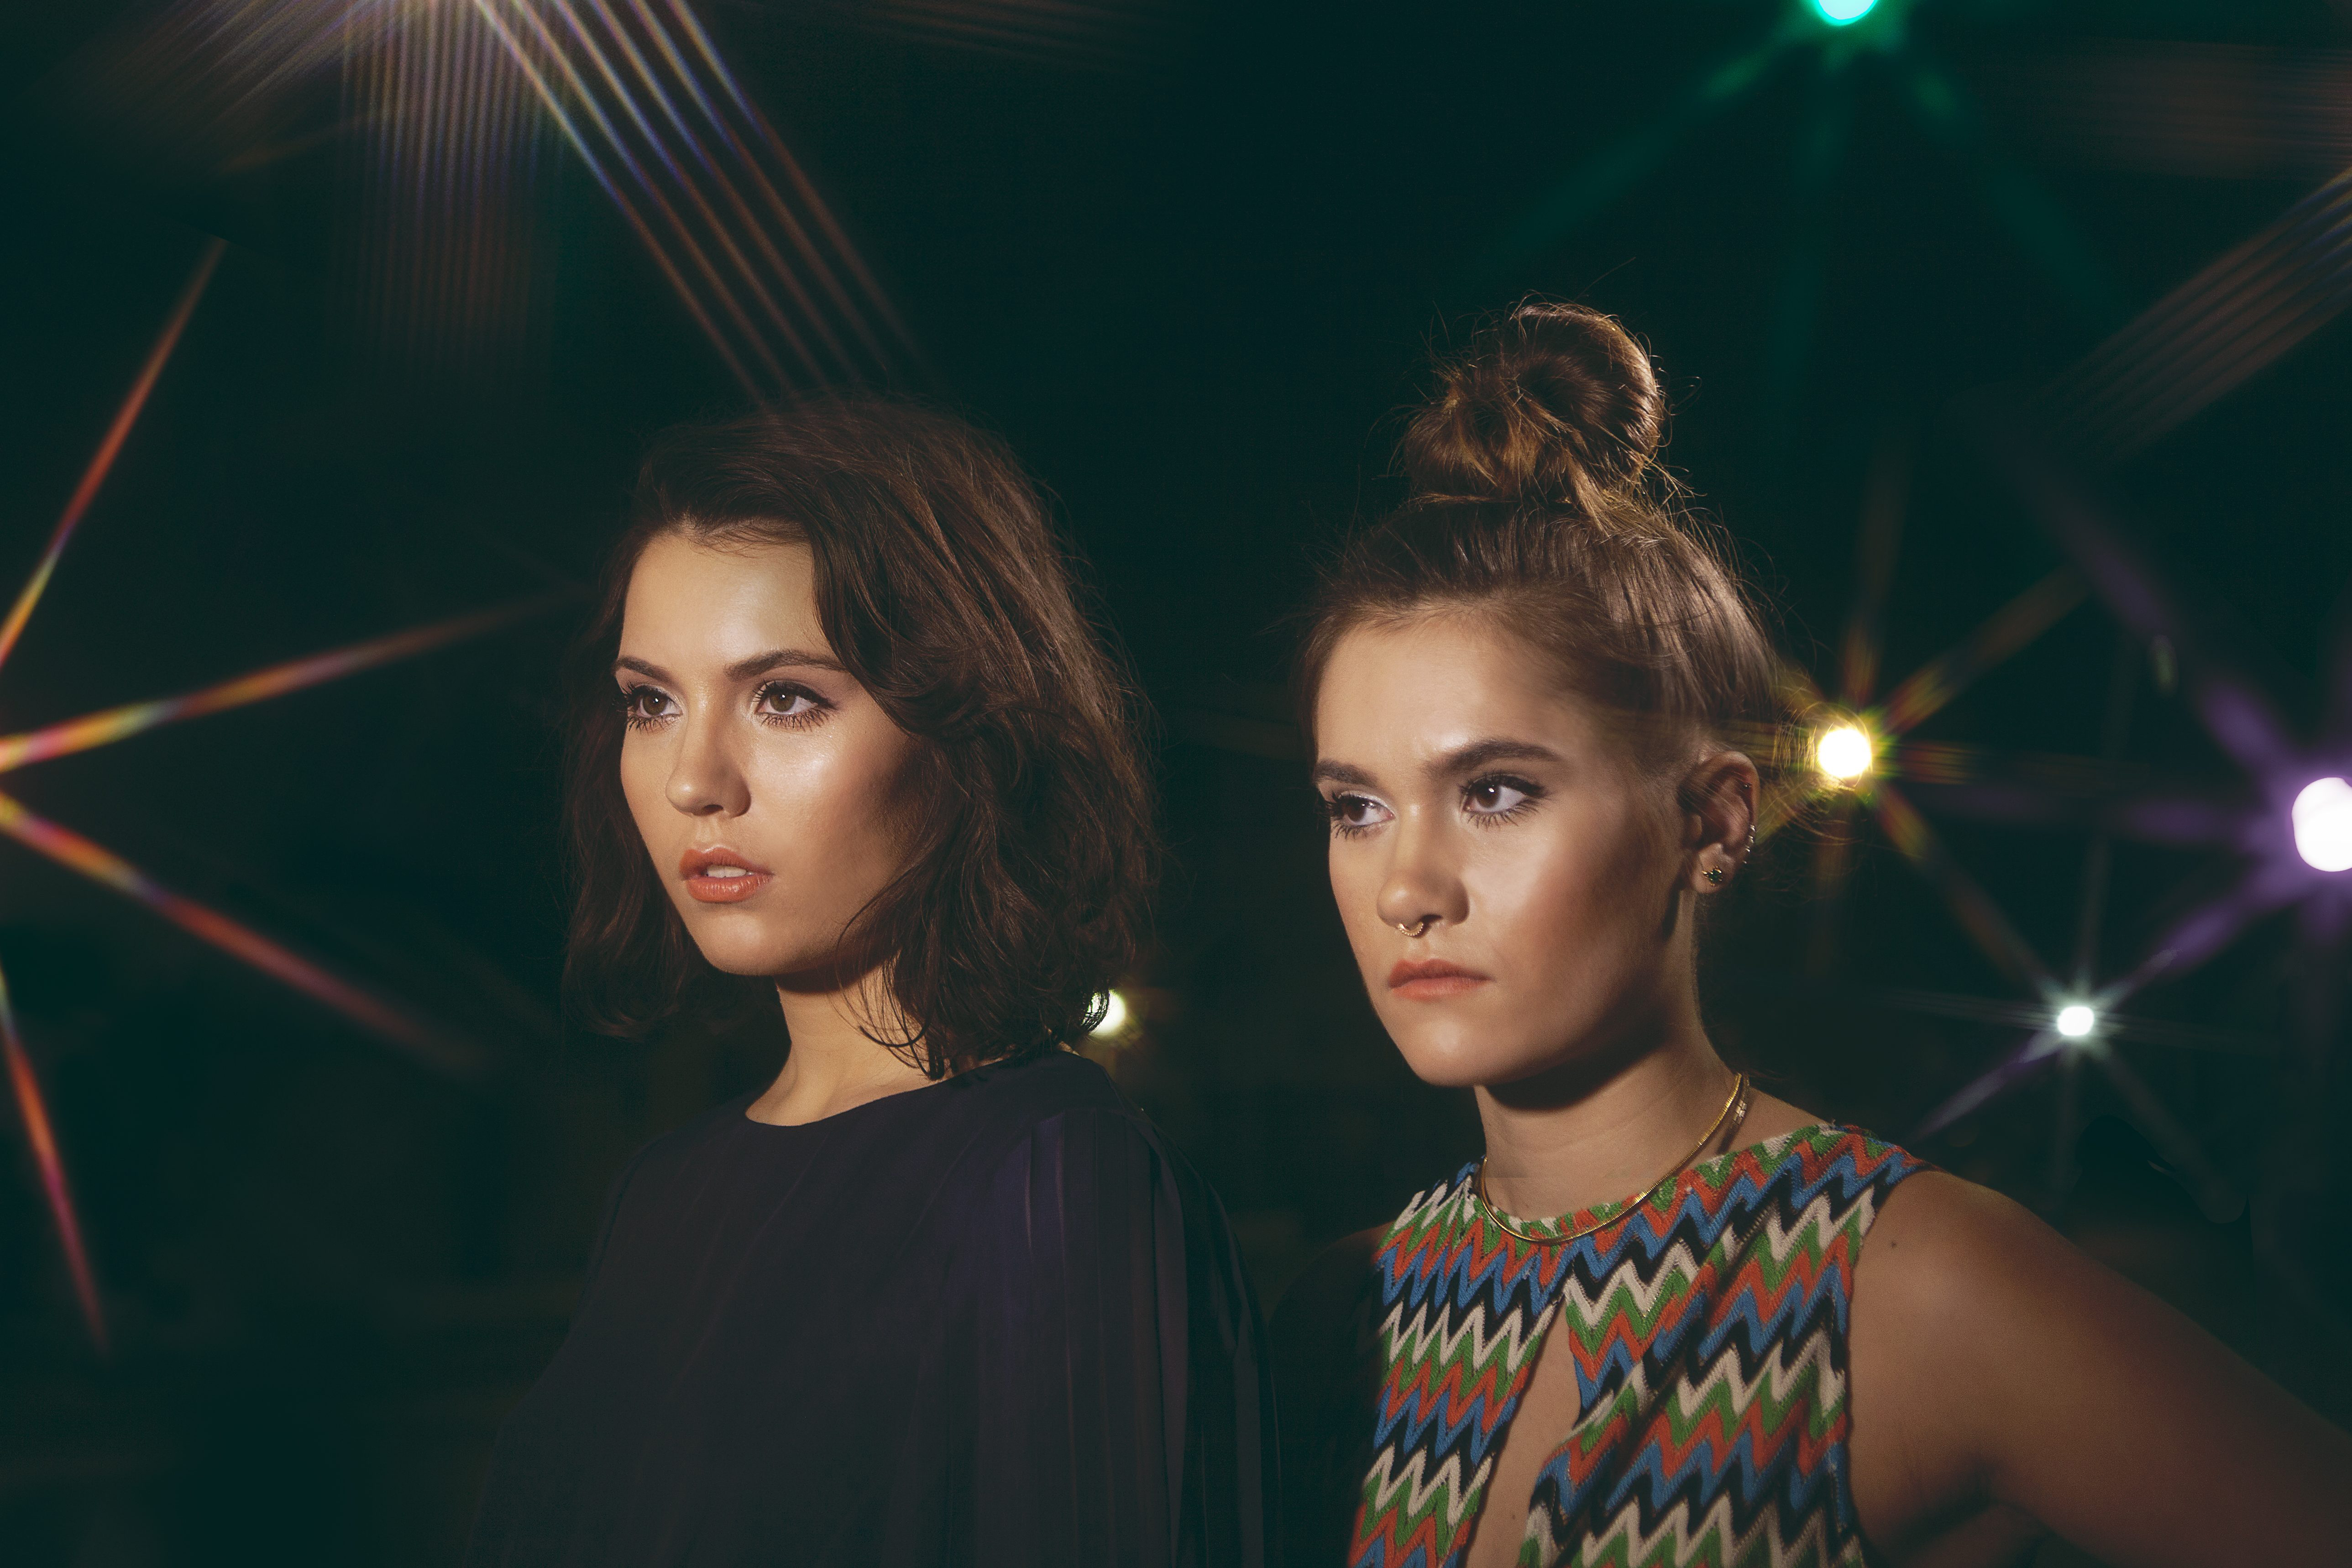 IN CONVERSATION: Lily and Madeleine